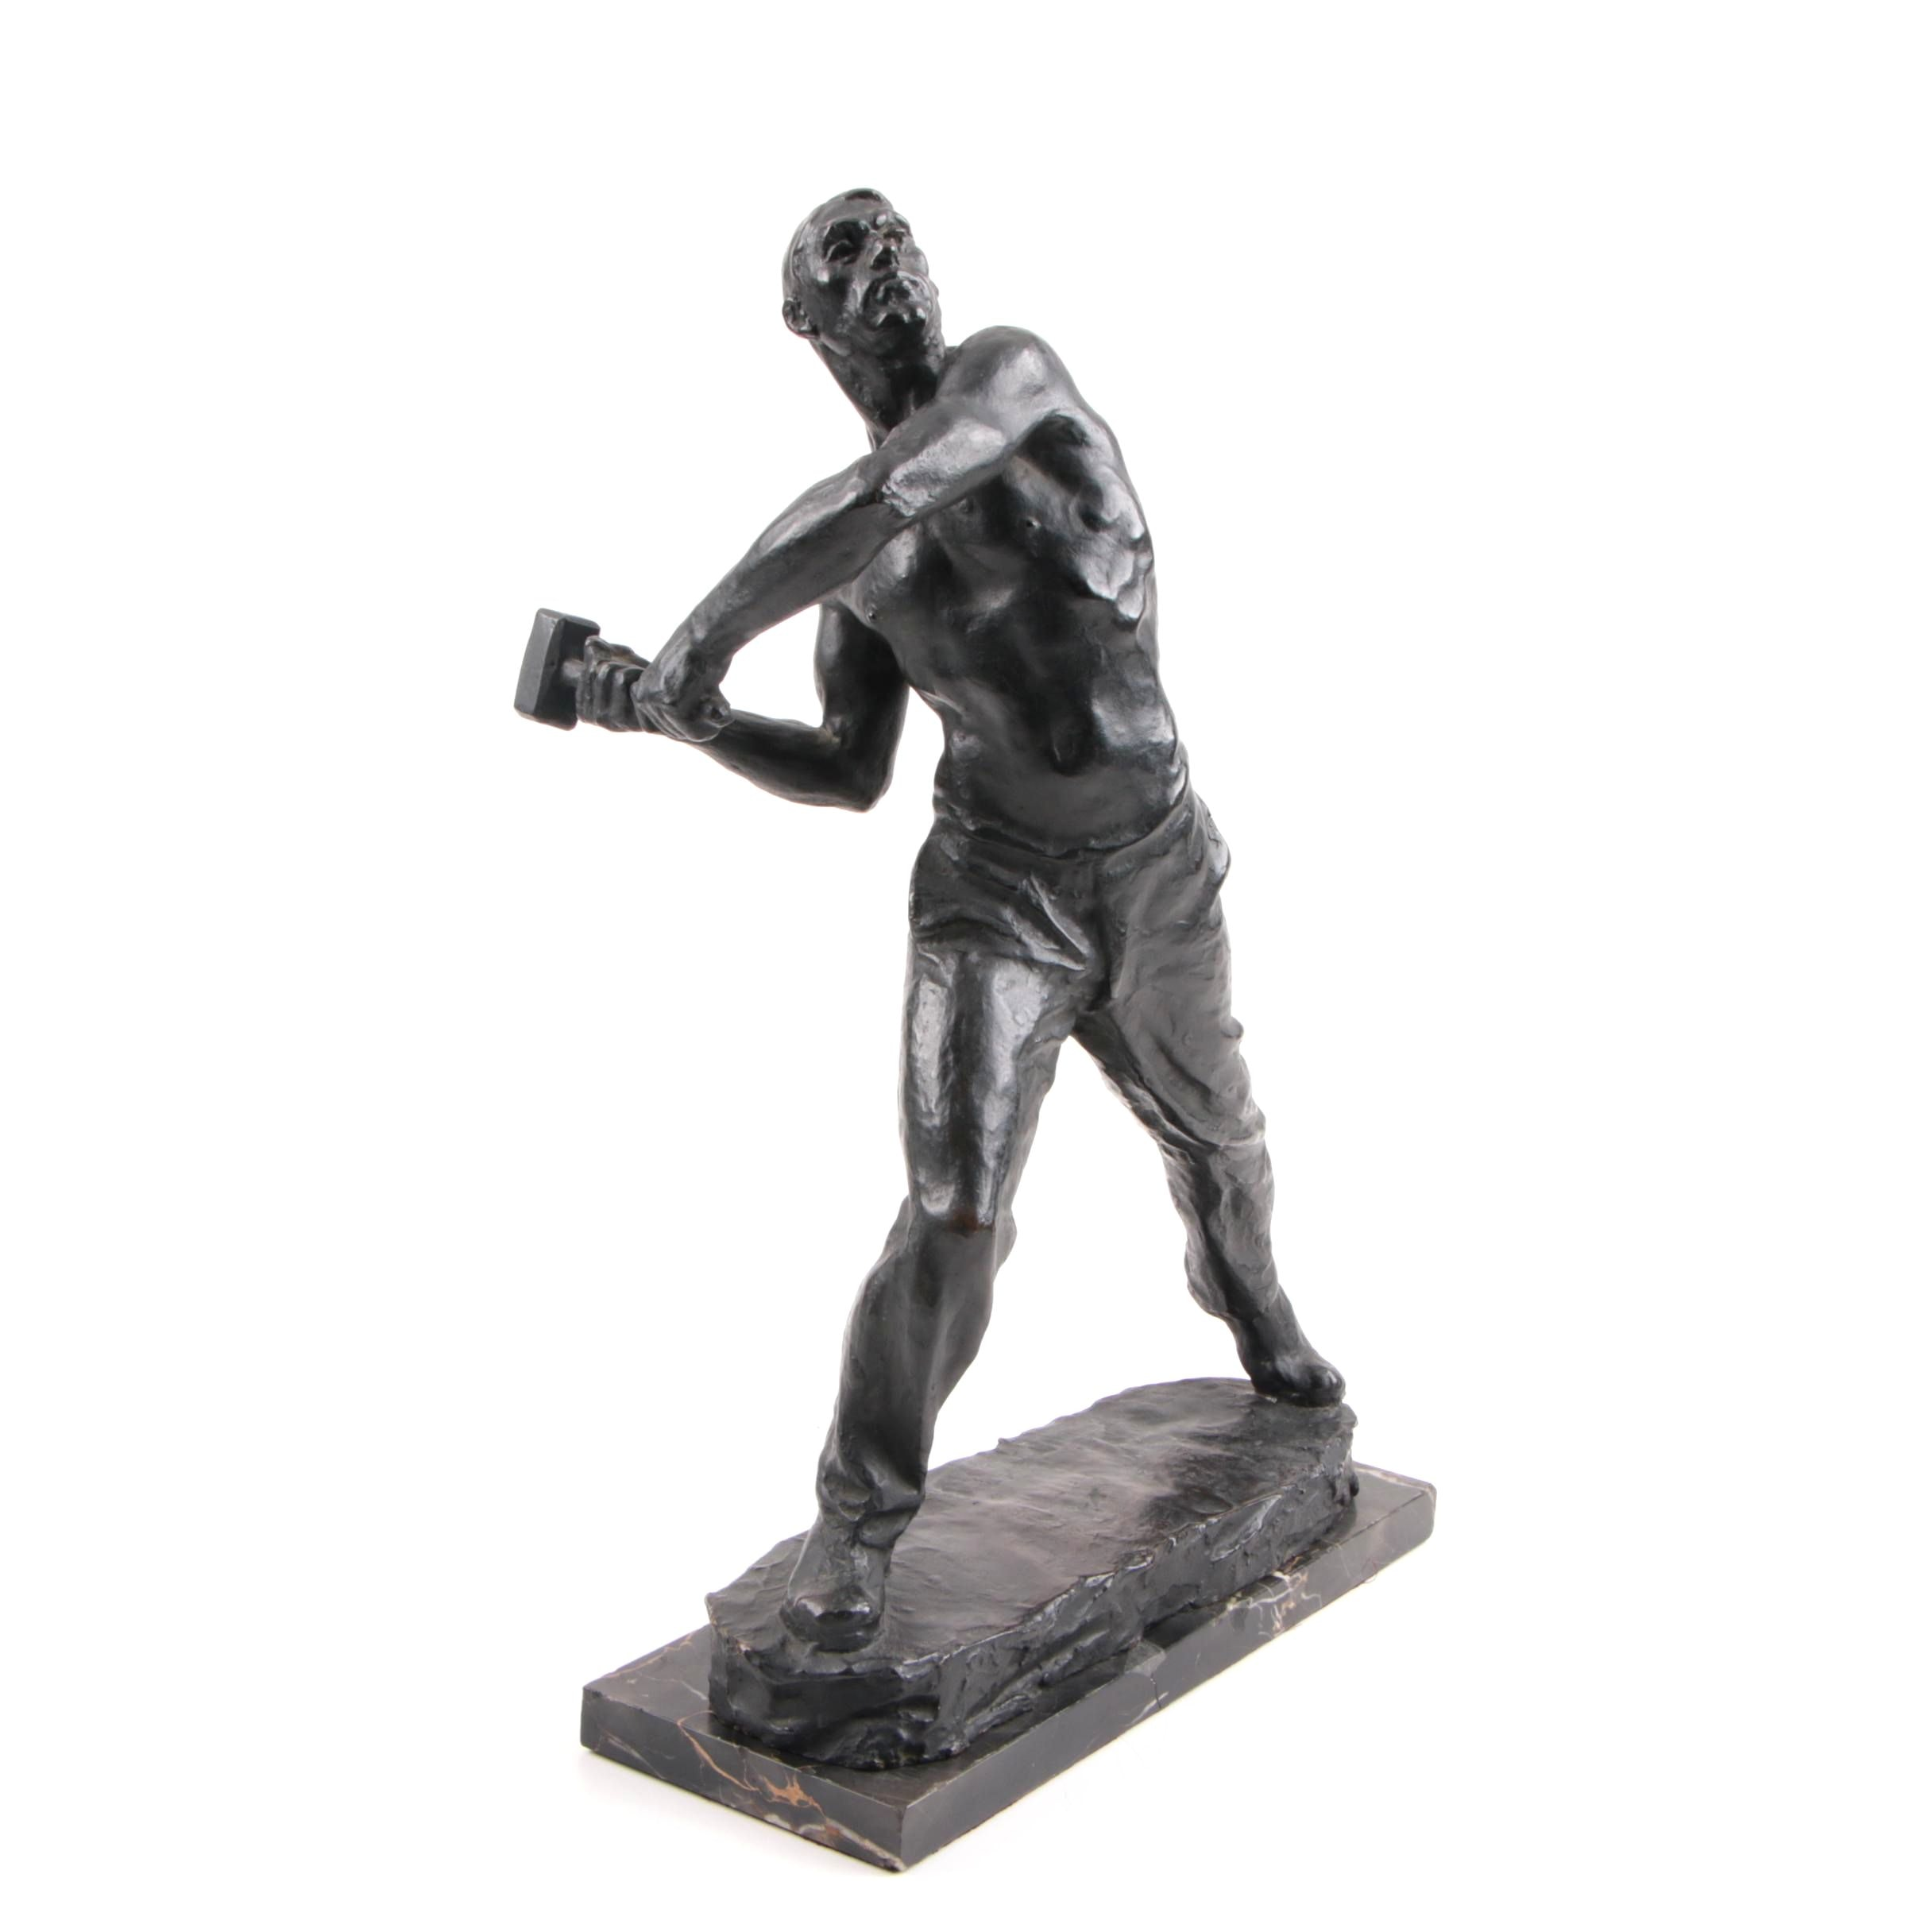 Max Kalish Circa 1930 Bronze Sculpture of Laborer on Original Porto D'Oro Base